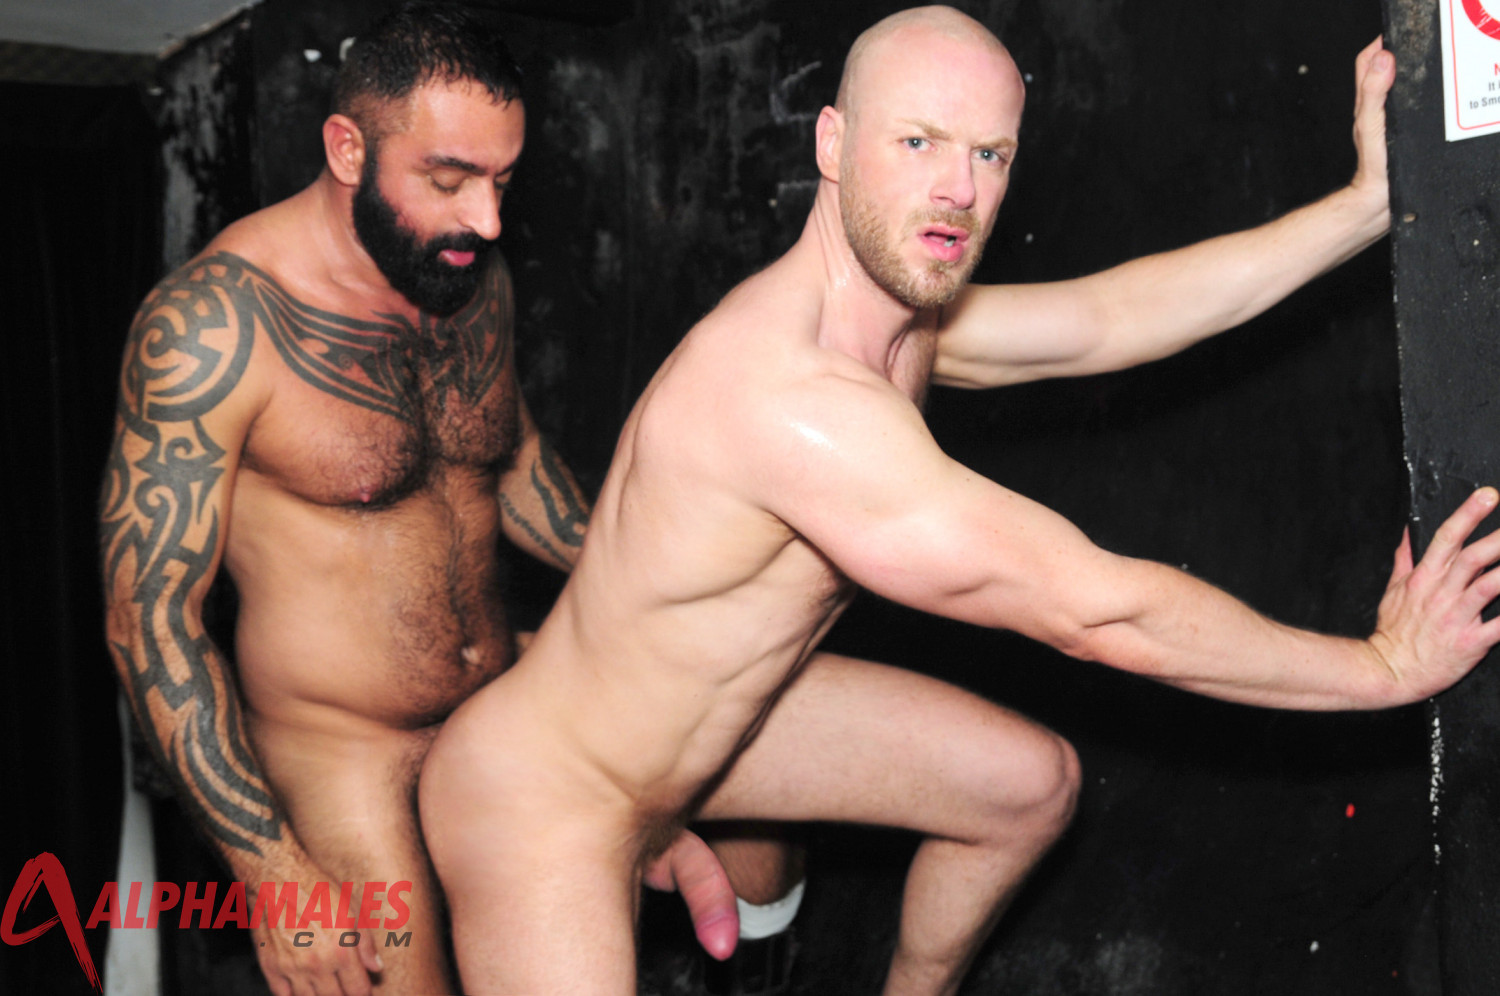 Alphamales-Nathan-Price-and-Tom-Colt-fucking-08 Thick Amatuer Uncut Cocks Fucking on the Dance Floor